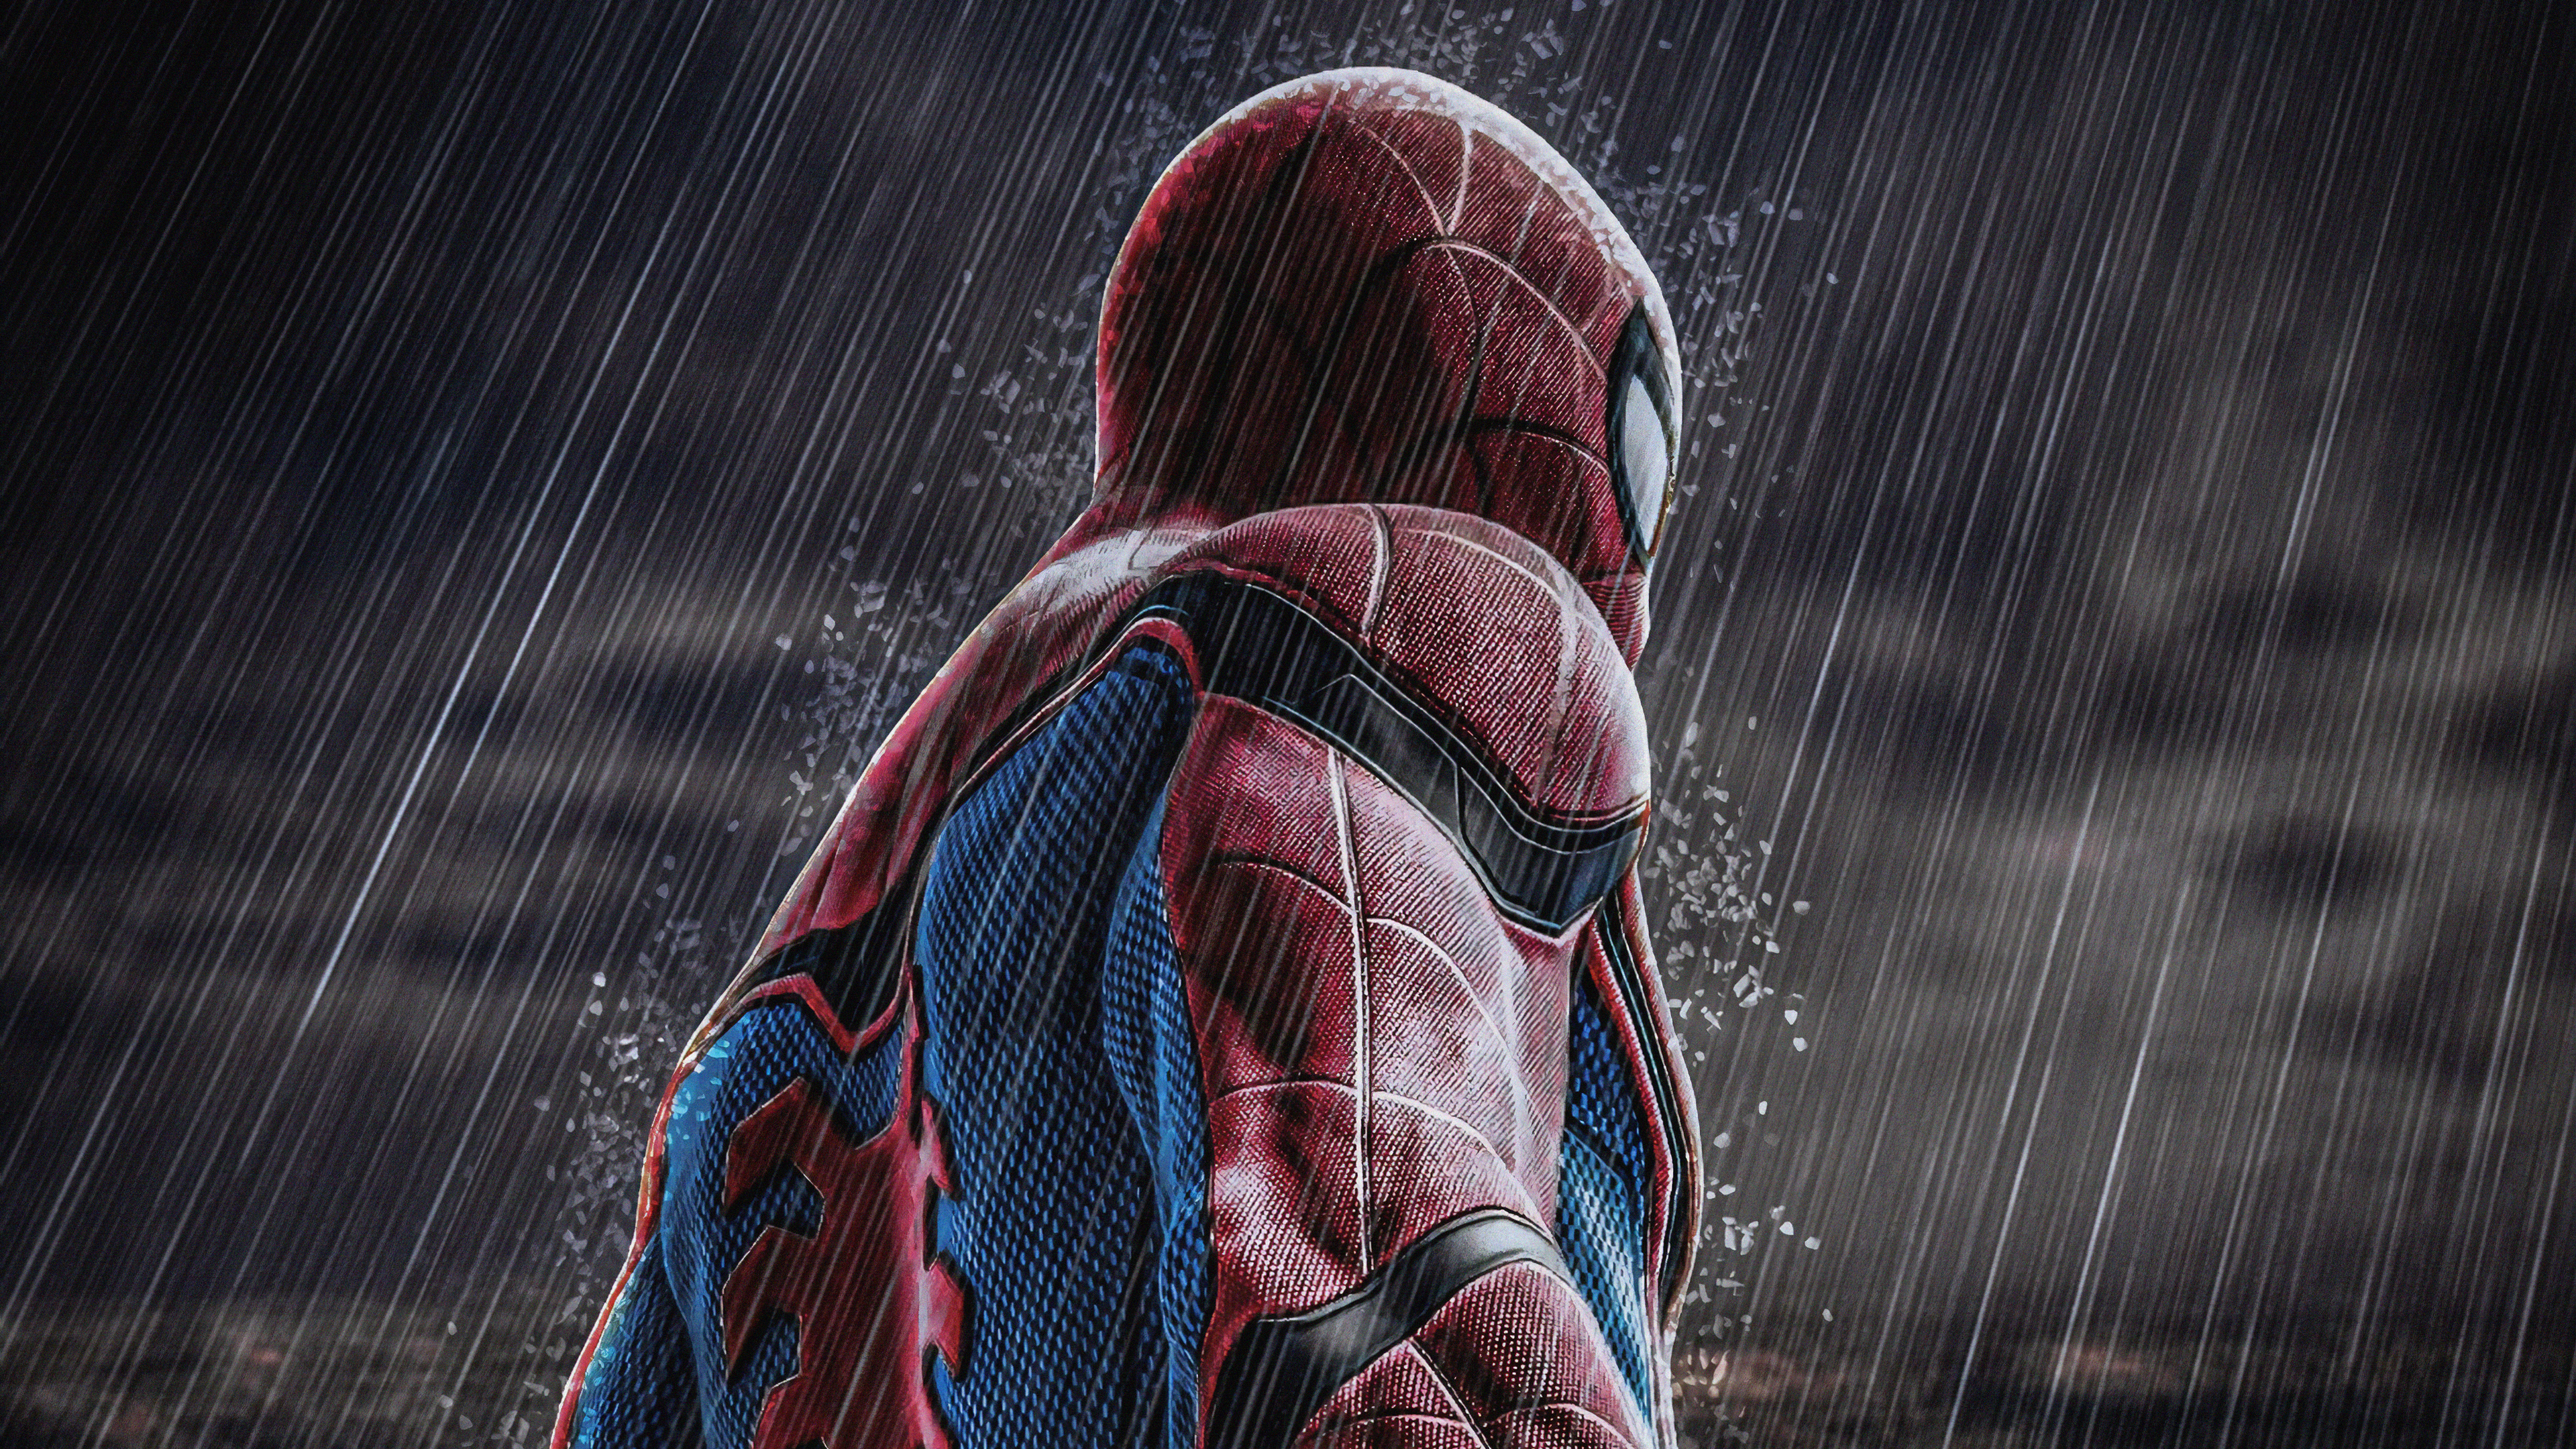 spiderman in rain 1563220061 - Spiderman In Rain - superheroes wallpapers, spiderman wallpapers, hd-wallpapers, digital art wallpapers, artwork wallpapers, art wallpapers, 4k-wallpapers